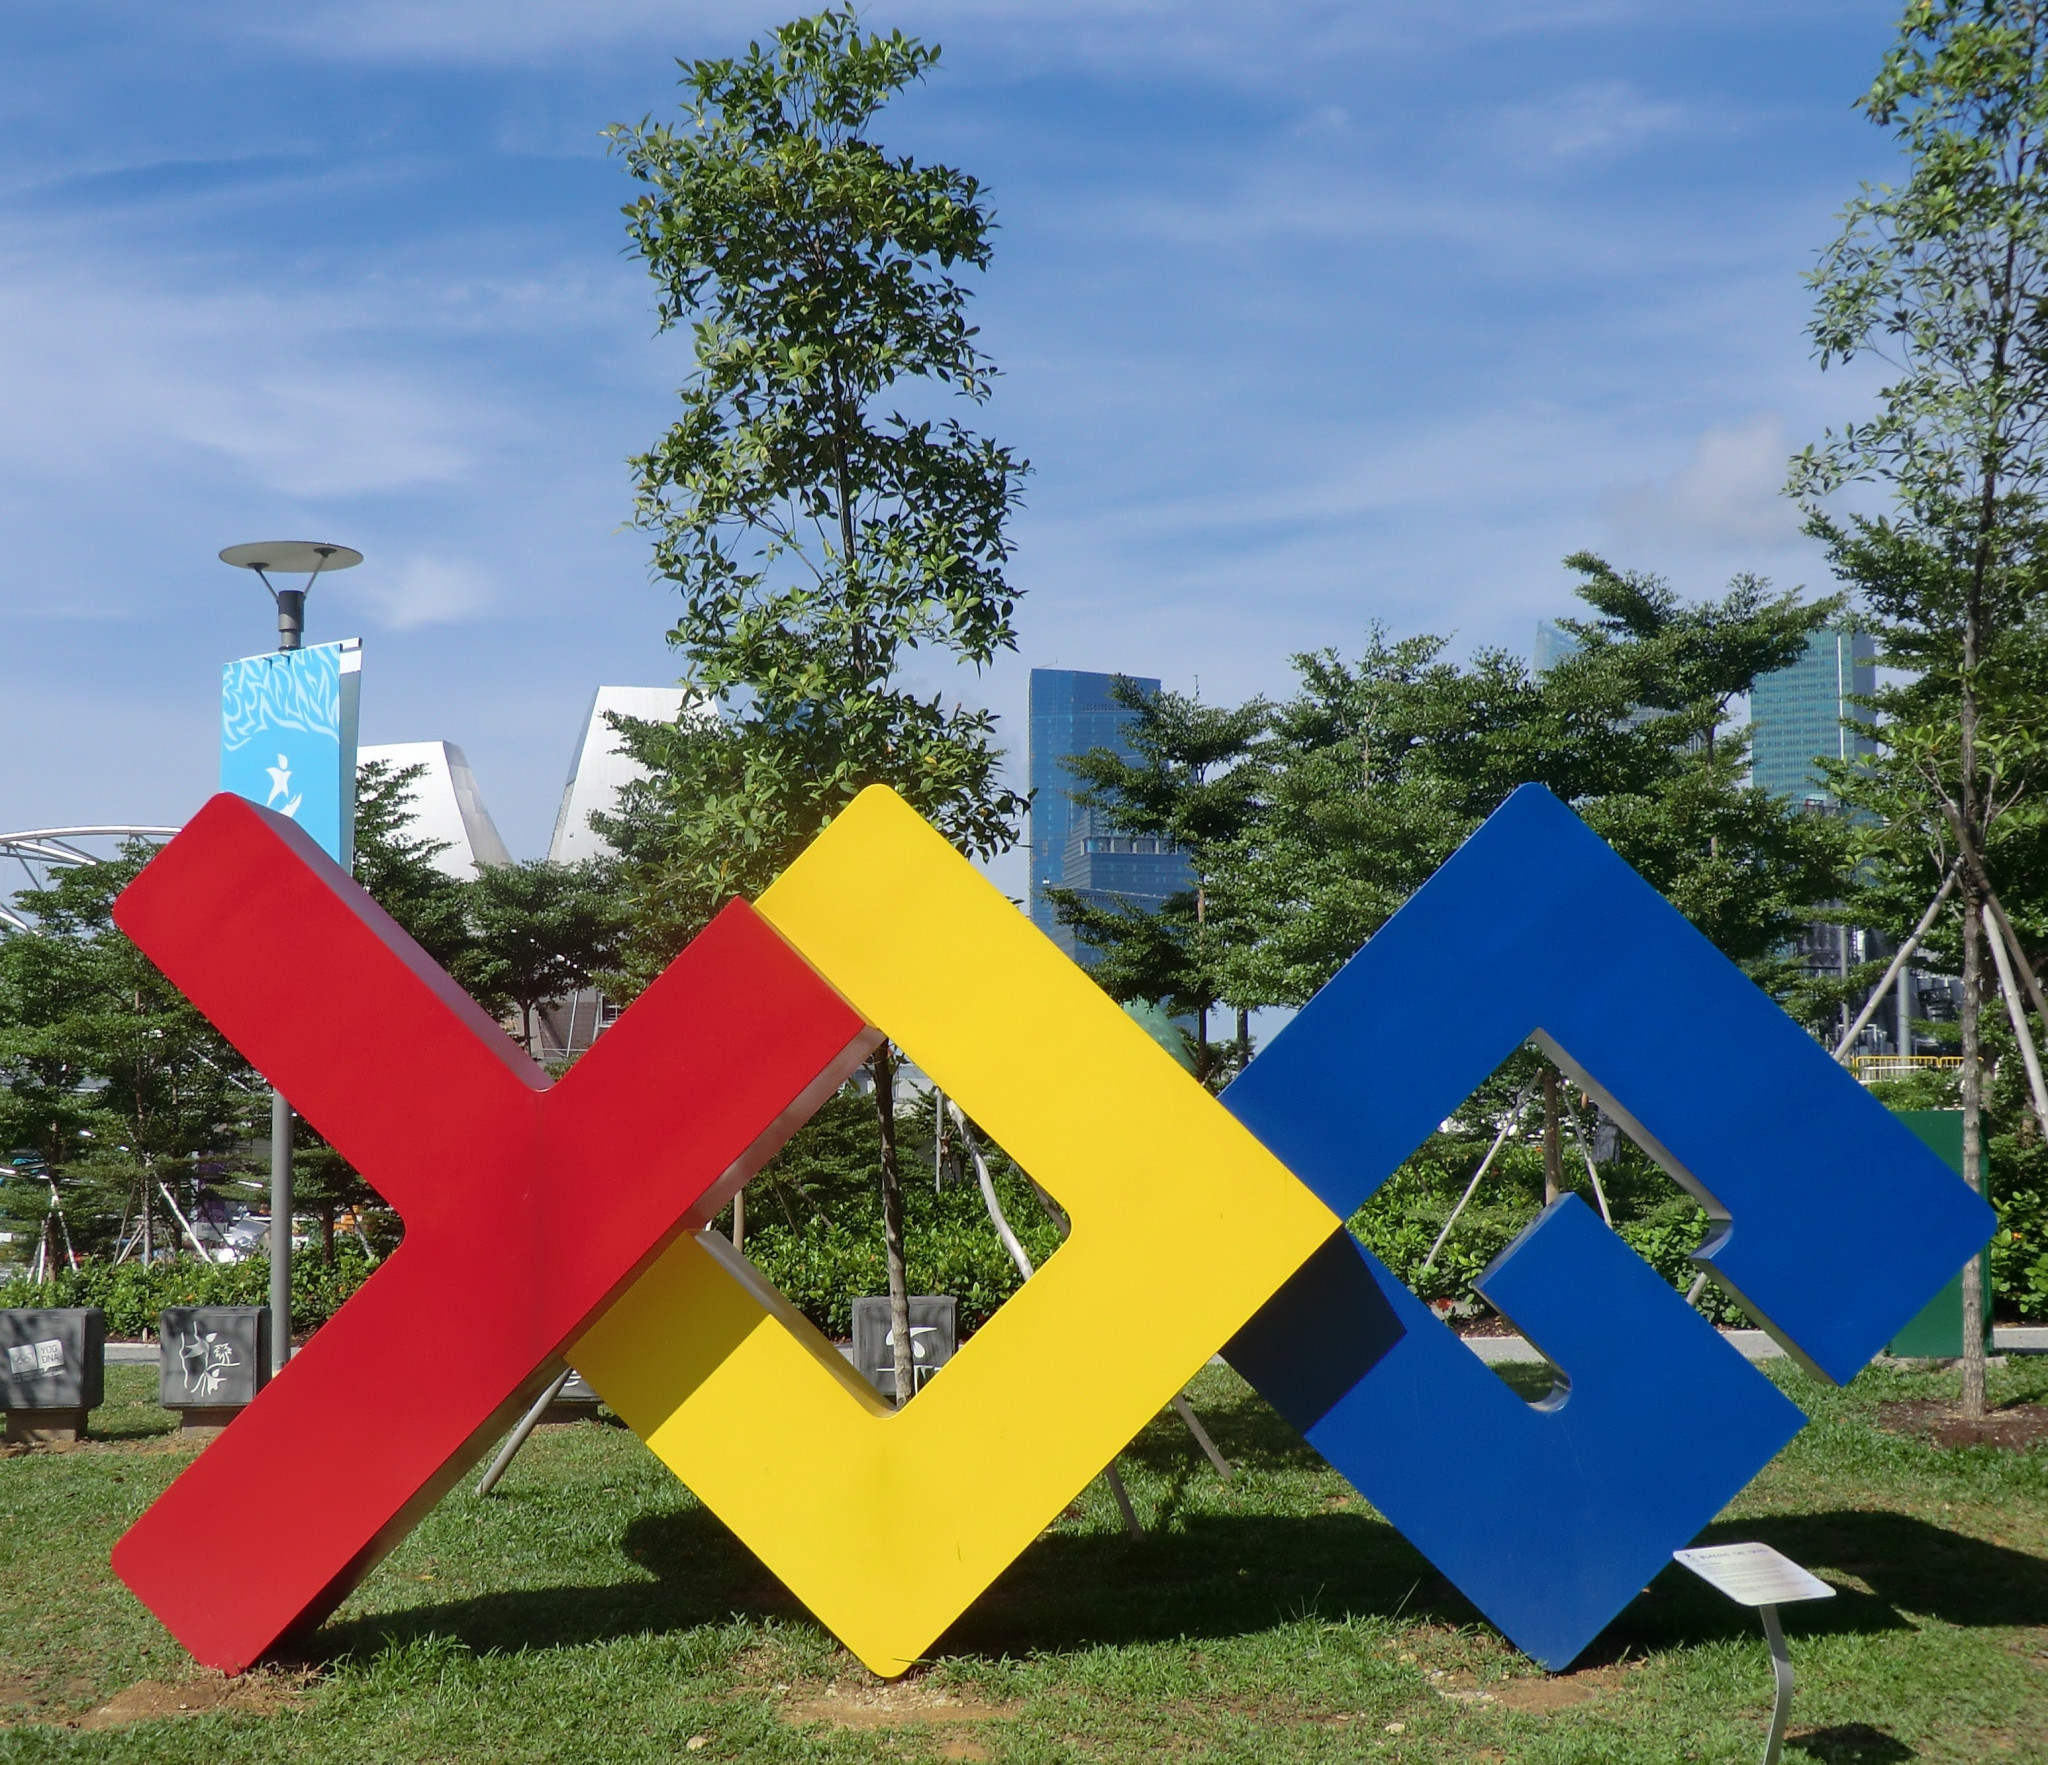 A sculpture celebrating the Youth Olympic Games in Singapore ©Philip Barker